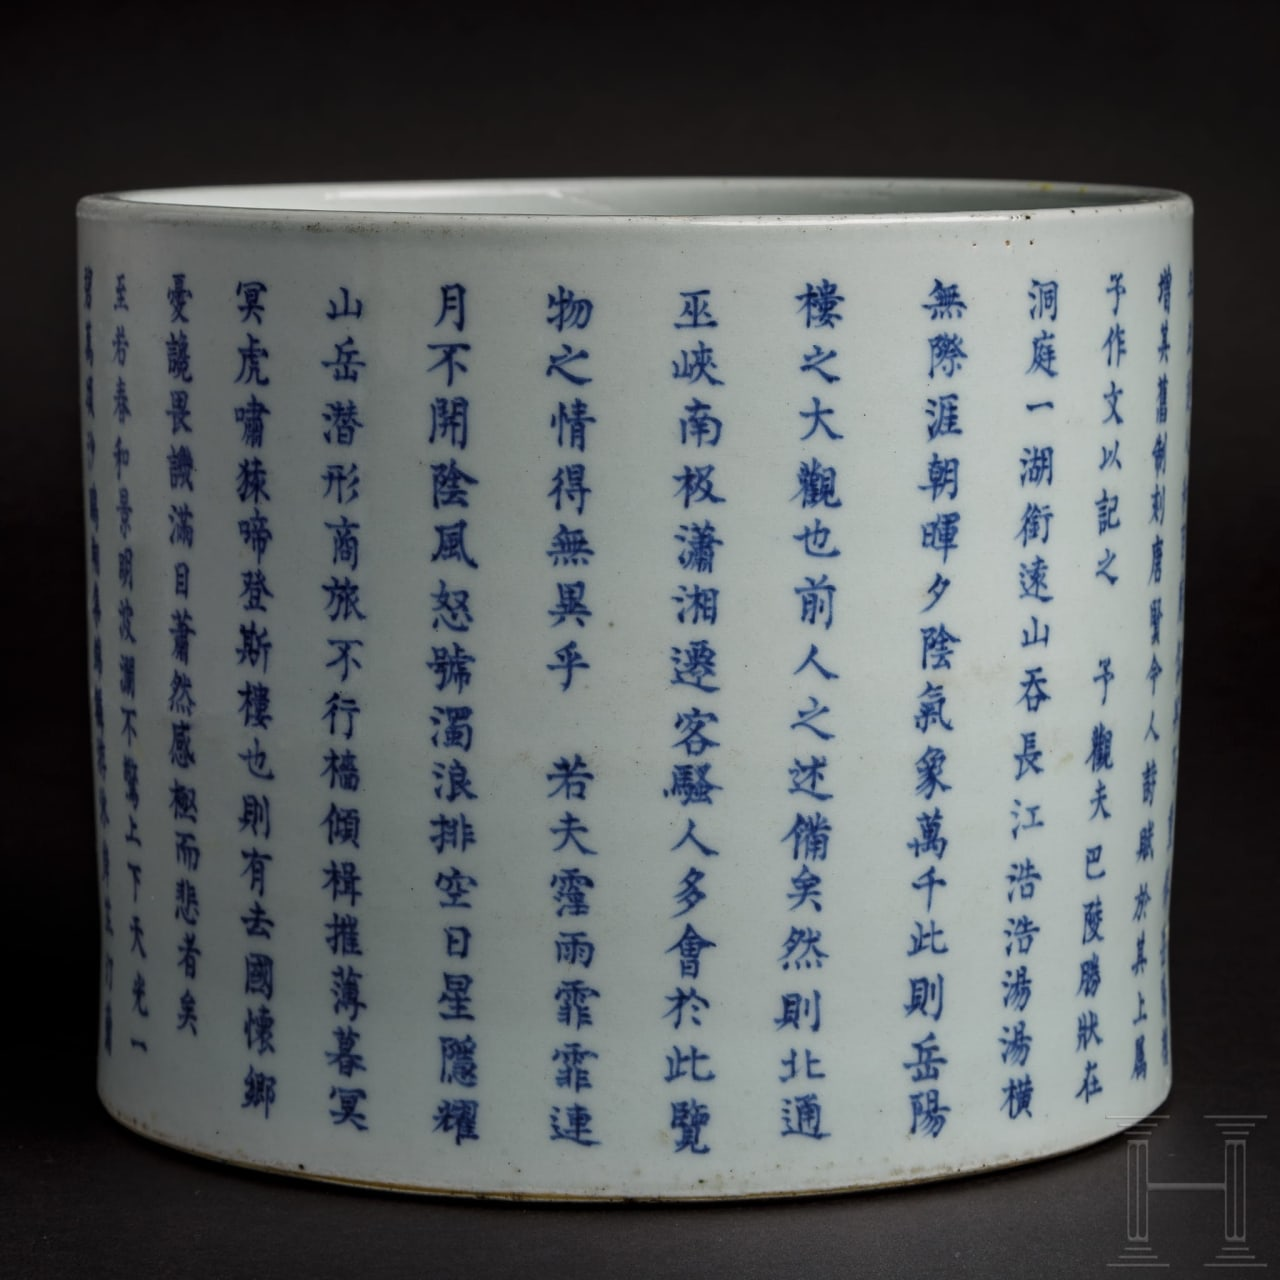 A rare inscribed underglaze blue and copper-red decorated brushpot, China, Qing dynasty, probably Kangxi period